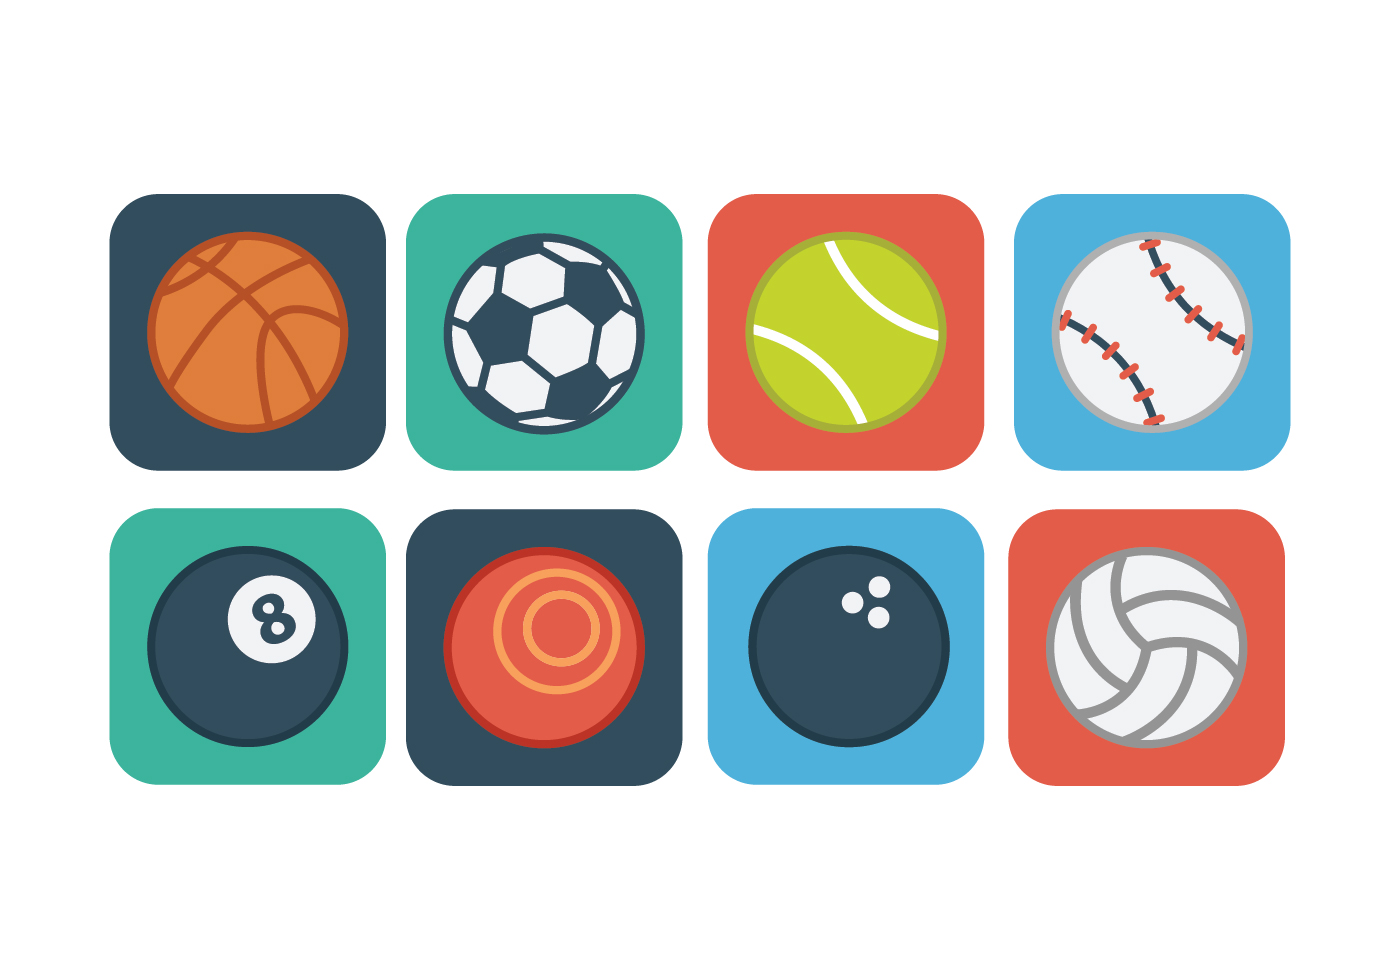 Sports Ball Vector Background Art Free Download: Free Flat Sport Ball Icons